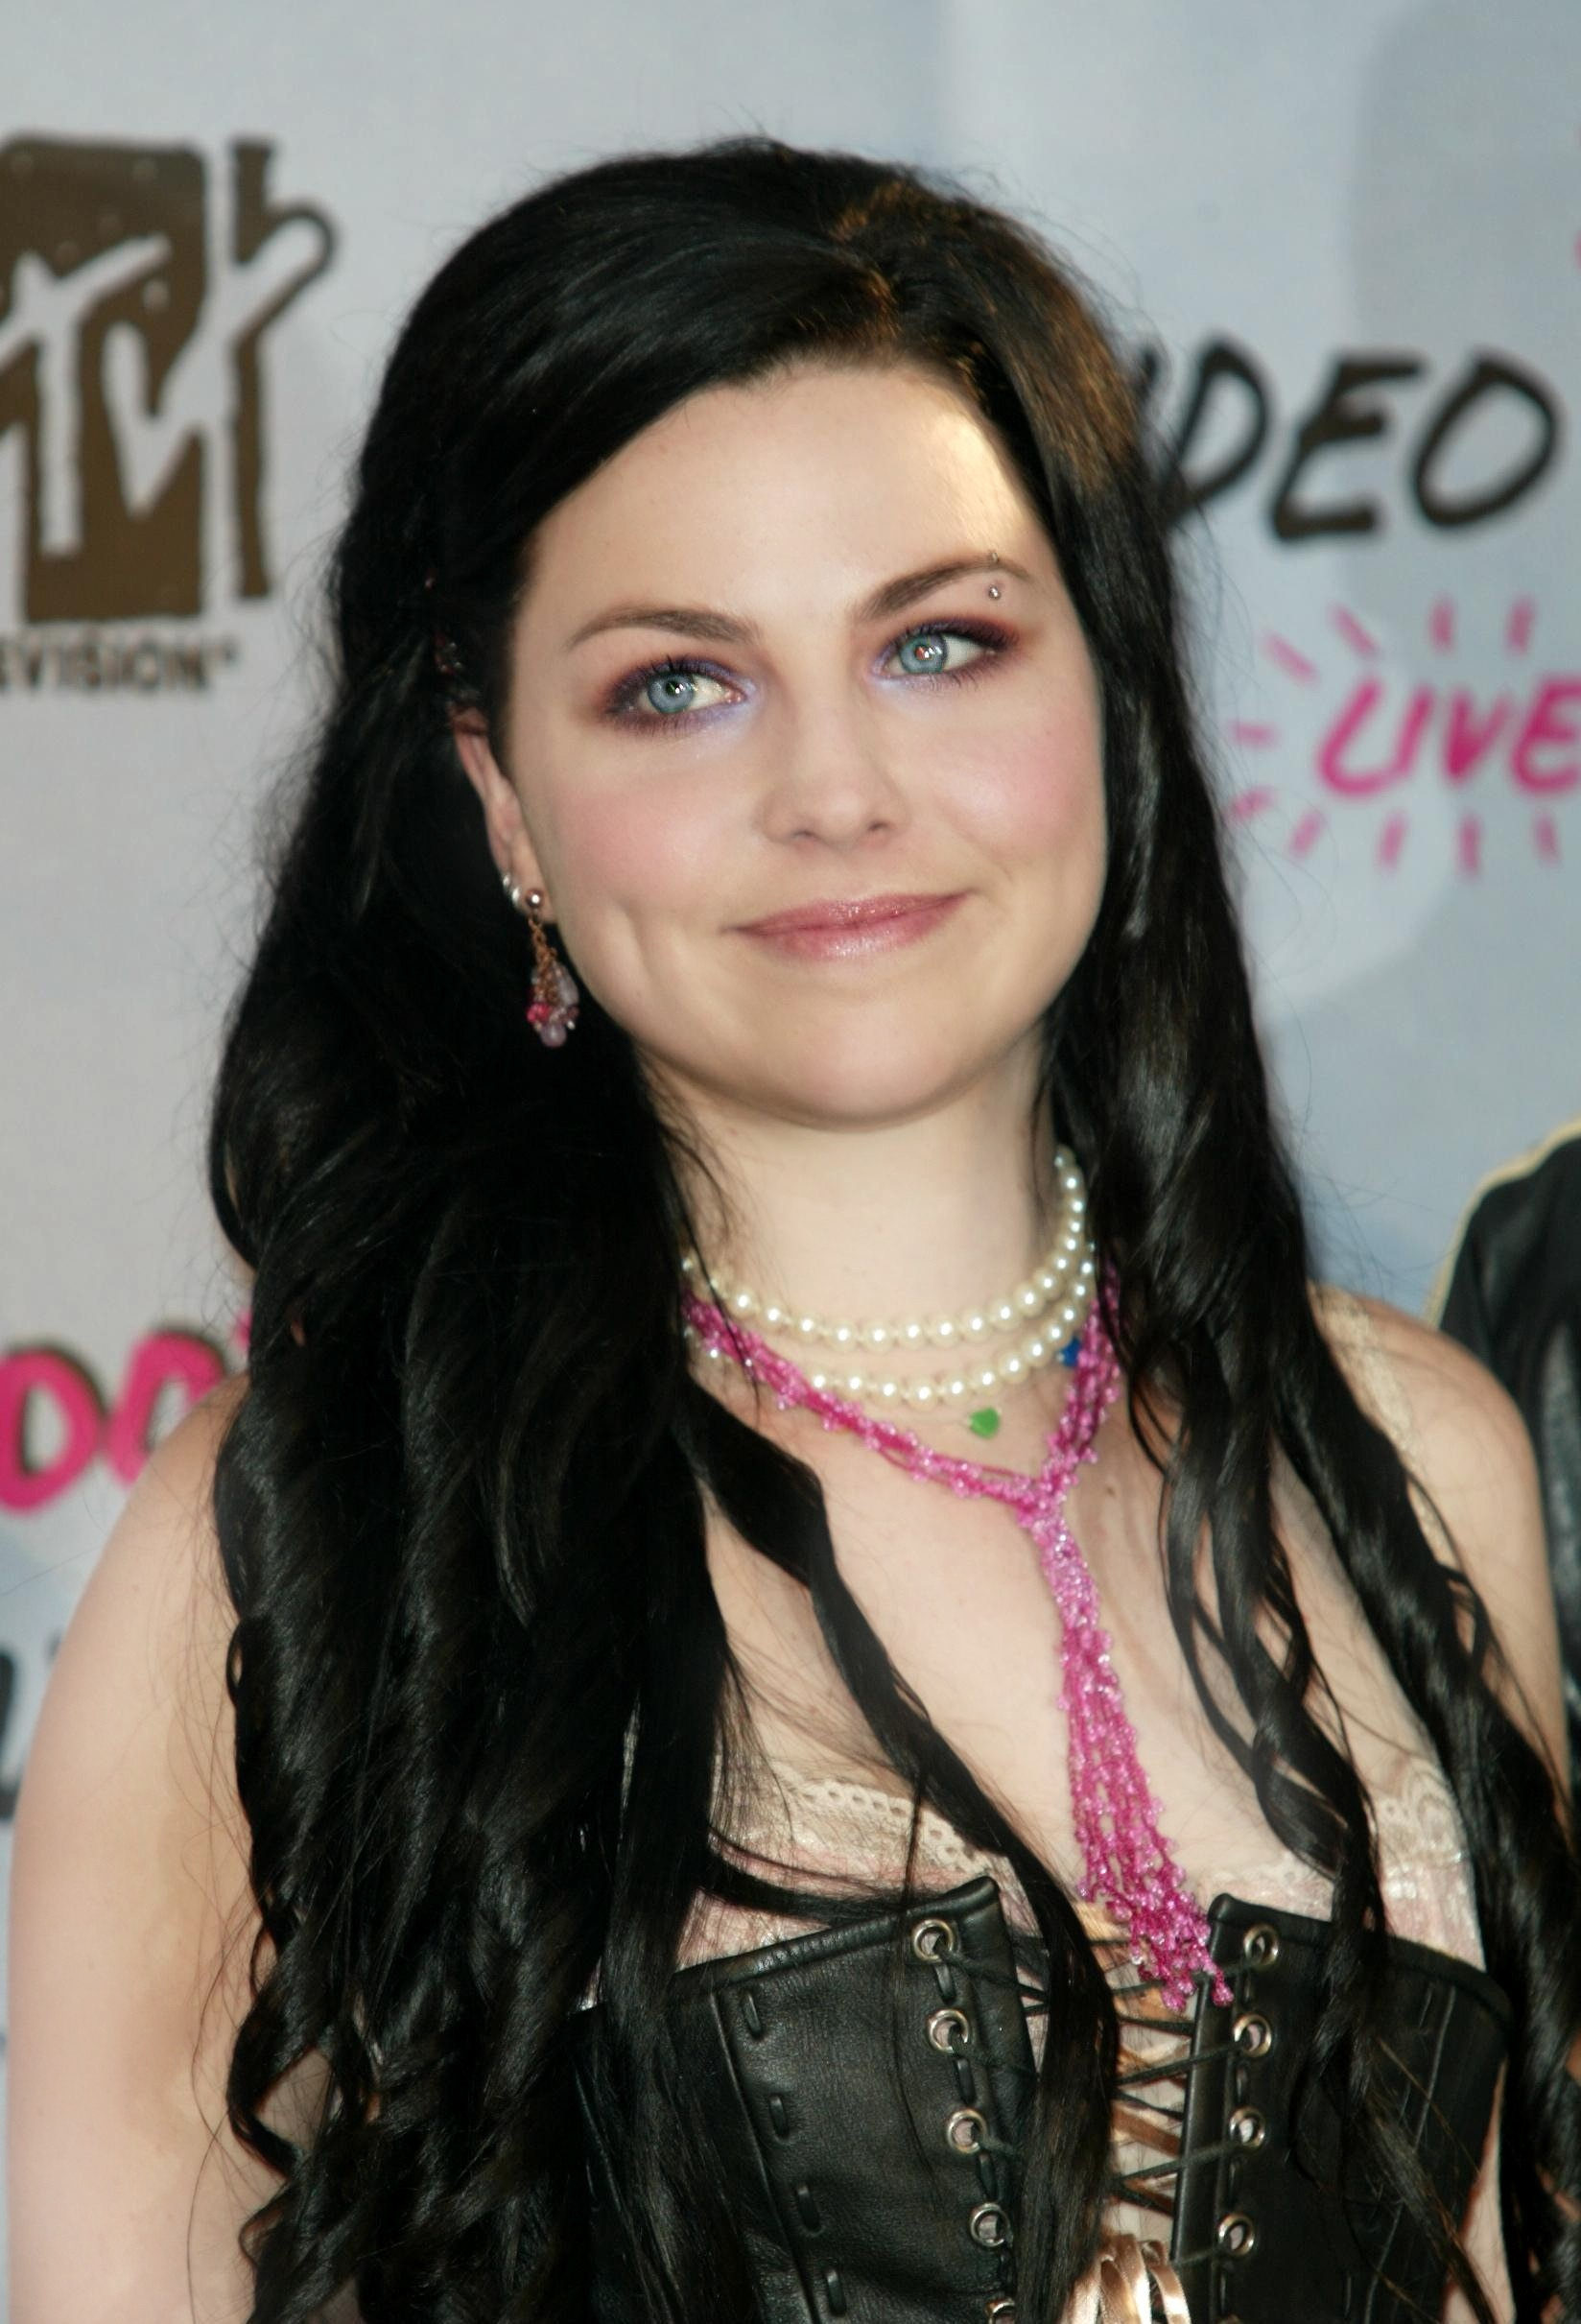 dooodle images Amy Lee HD wallpaper and background photos